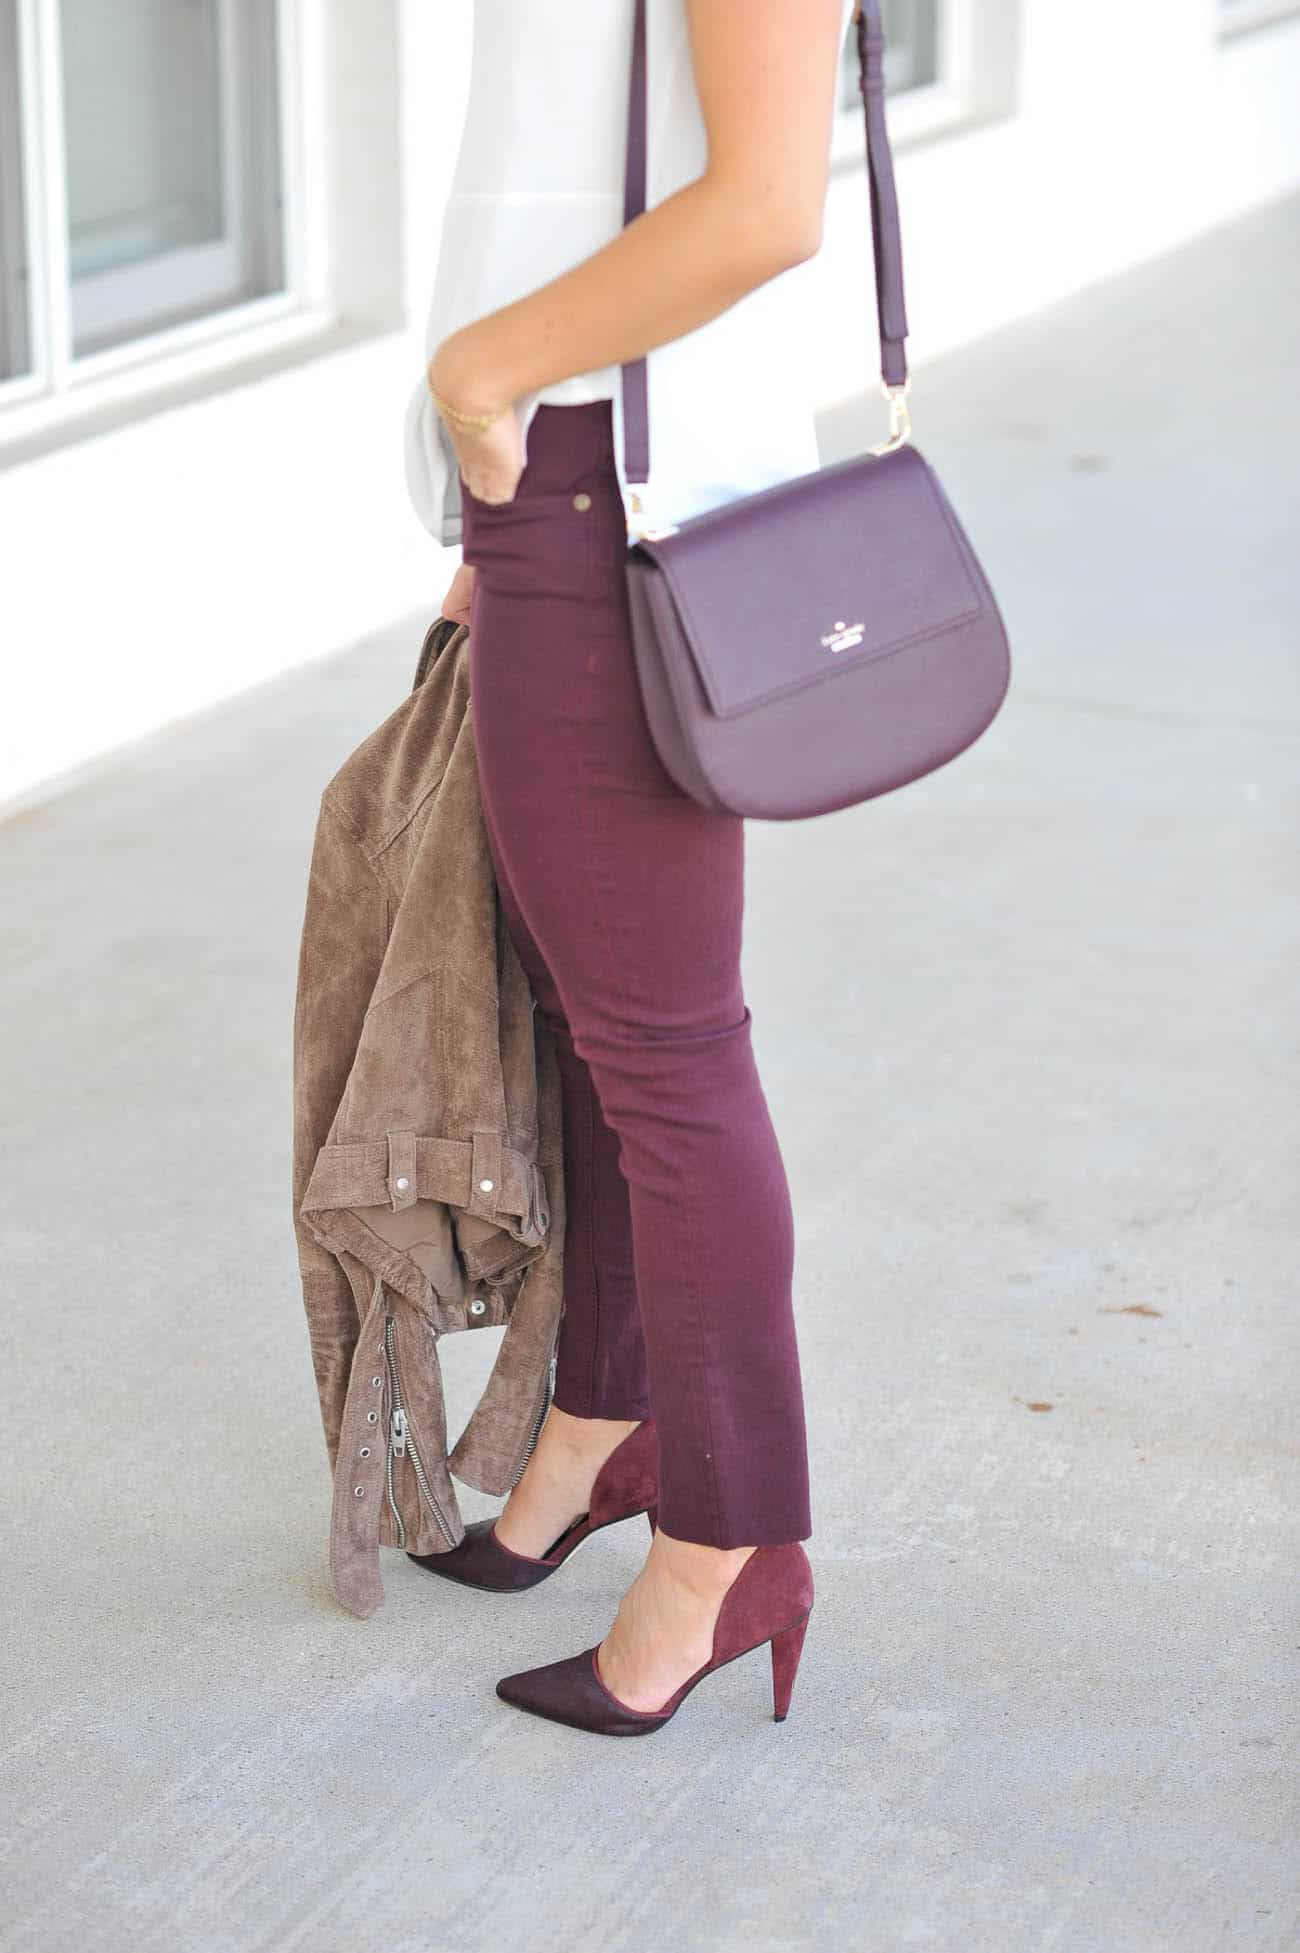 colored jeans for fall, burgundy outfit ideas for fall, date night outfit ideas - My Style Vita @mystylevita